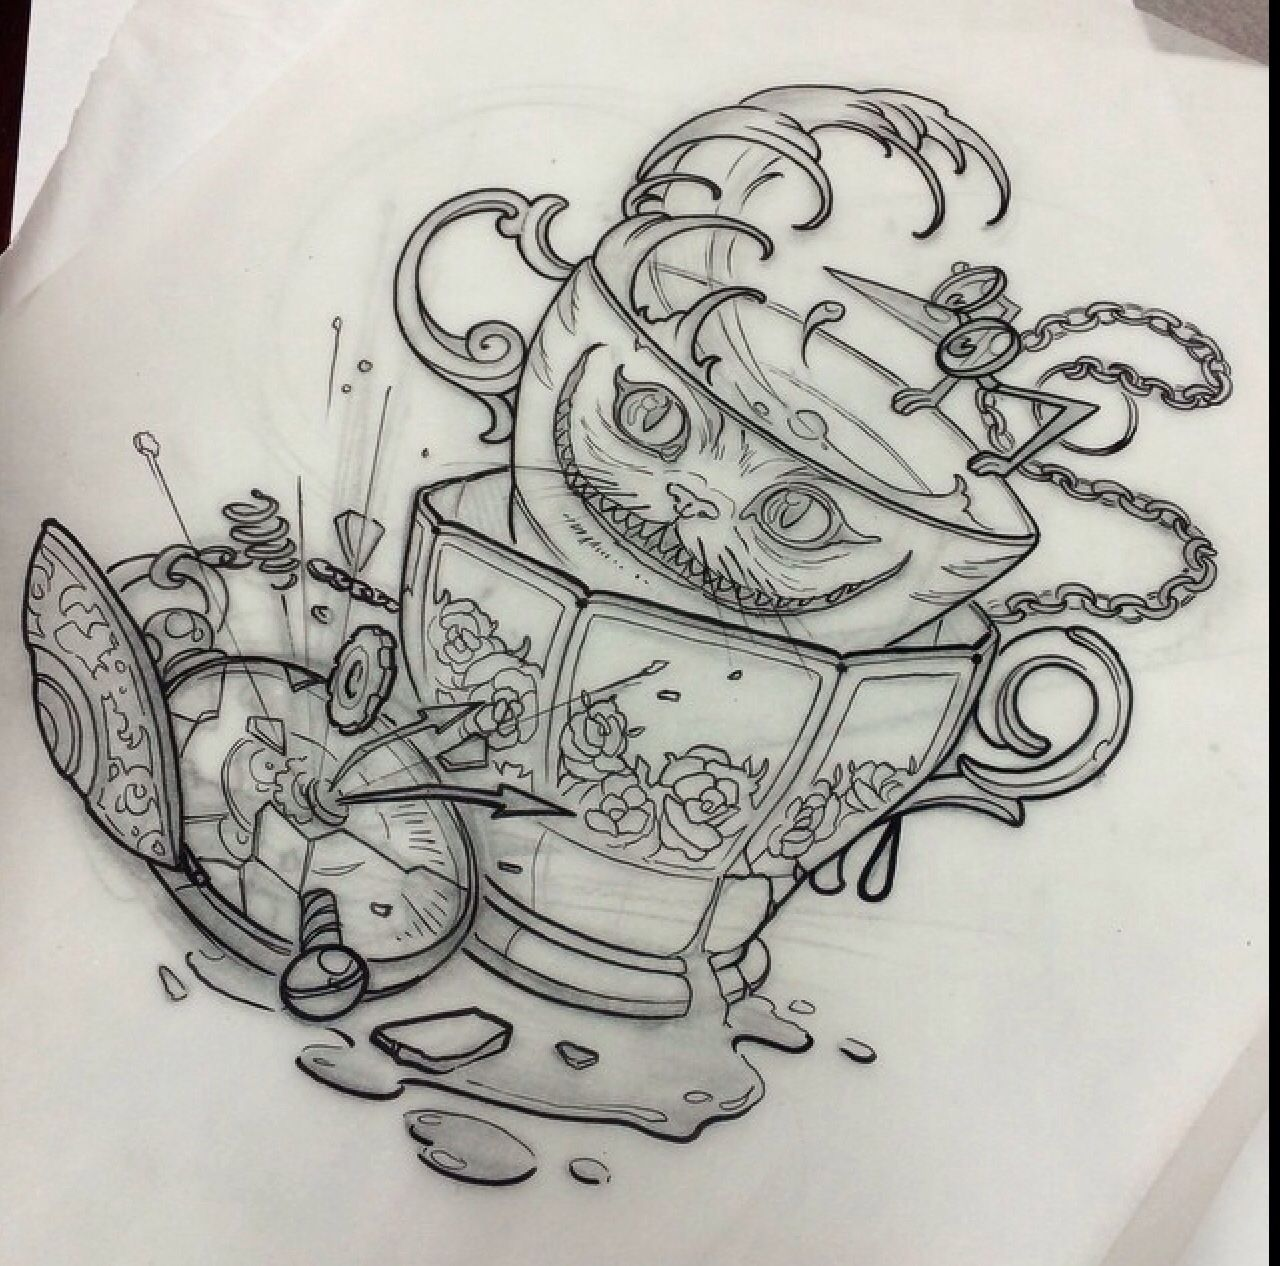 alice in wonderland tatuering pinterest alice tattoo and tatting. Black Bedroom Furniture Sets. Home Design Ideas